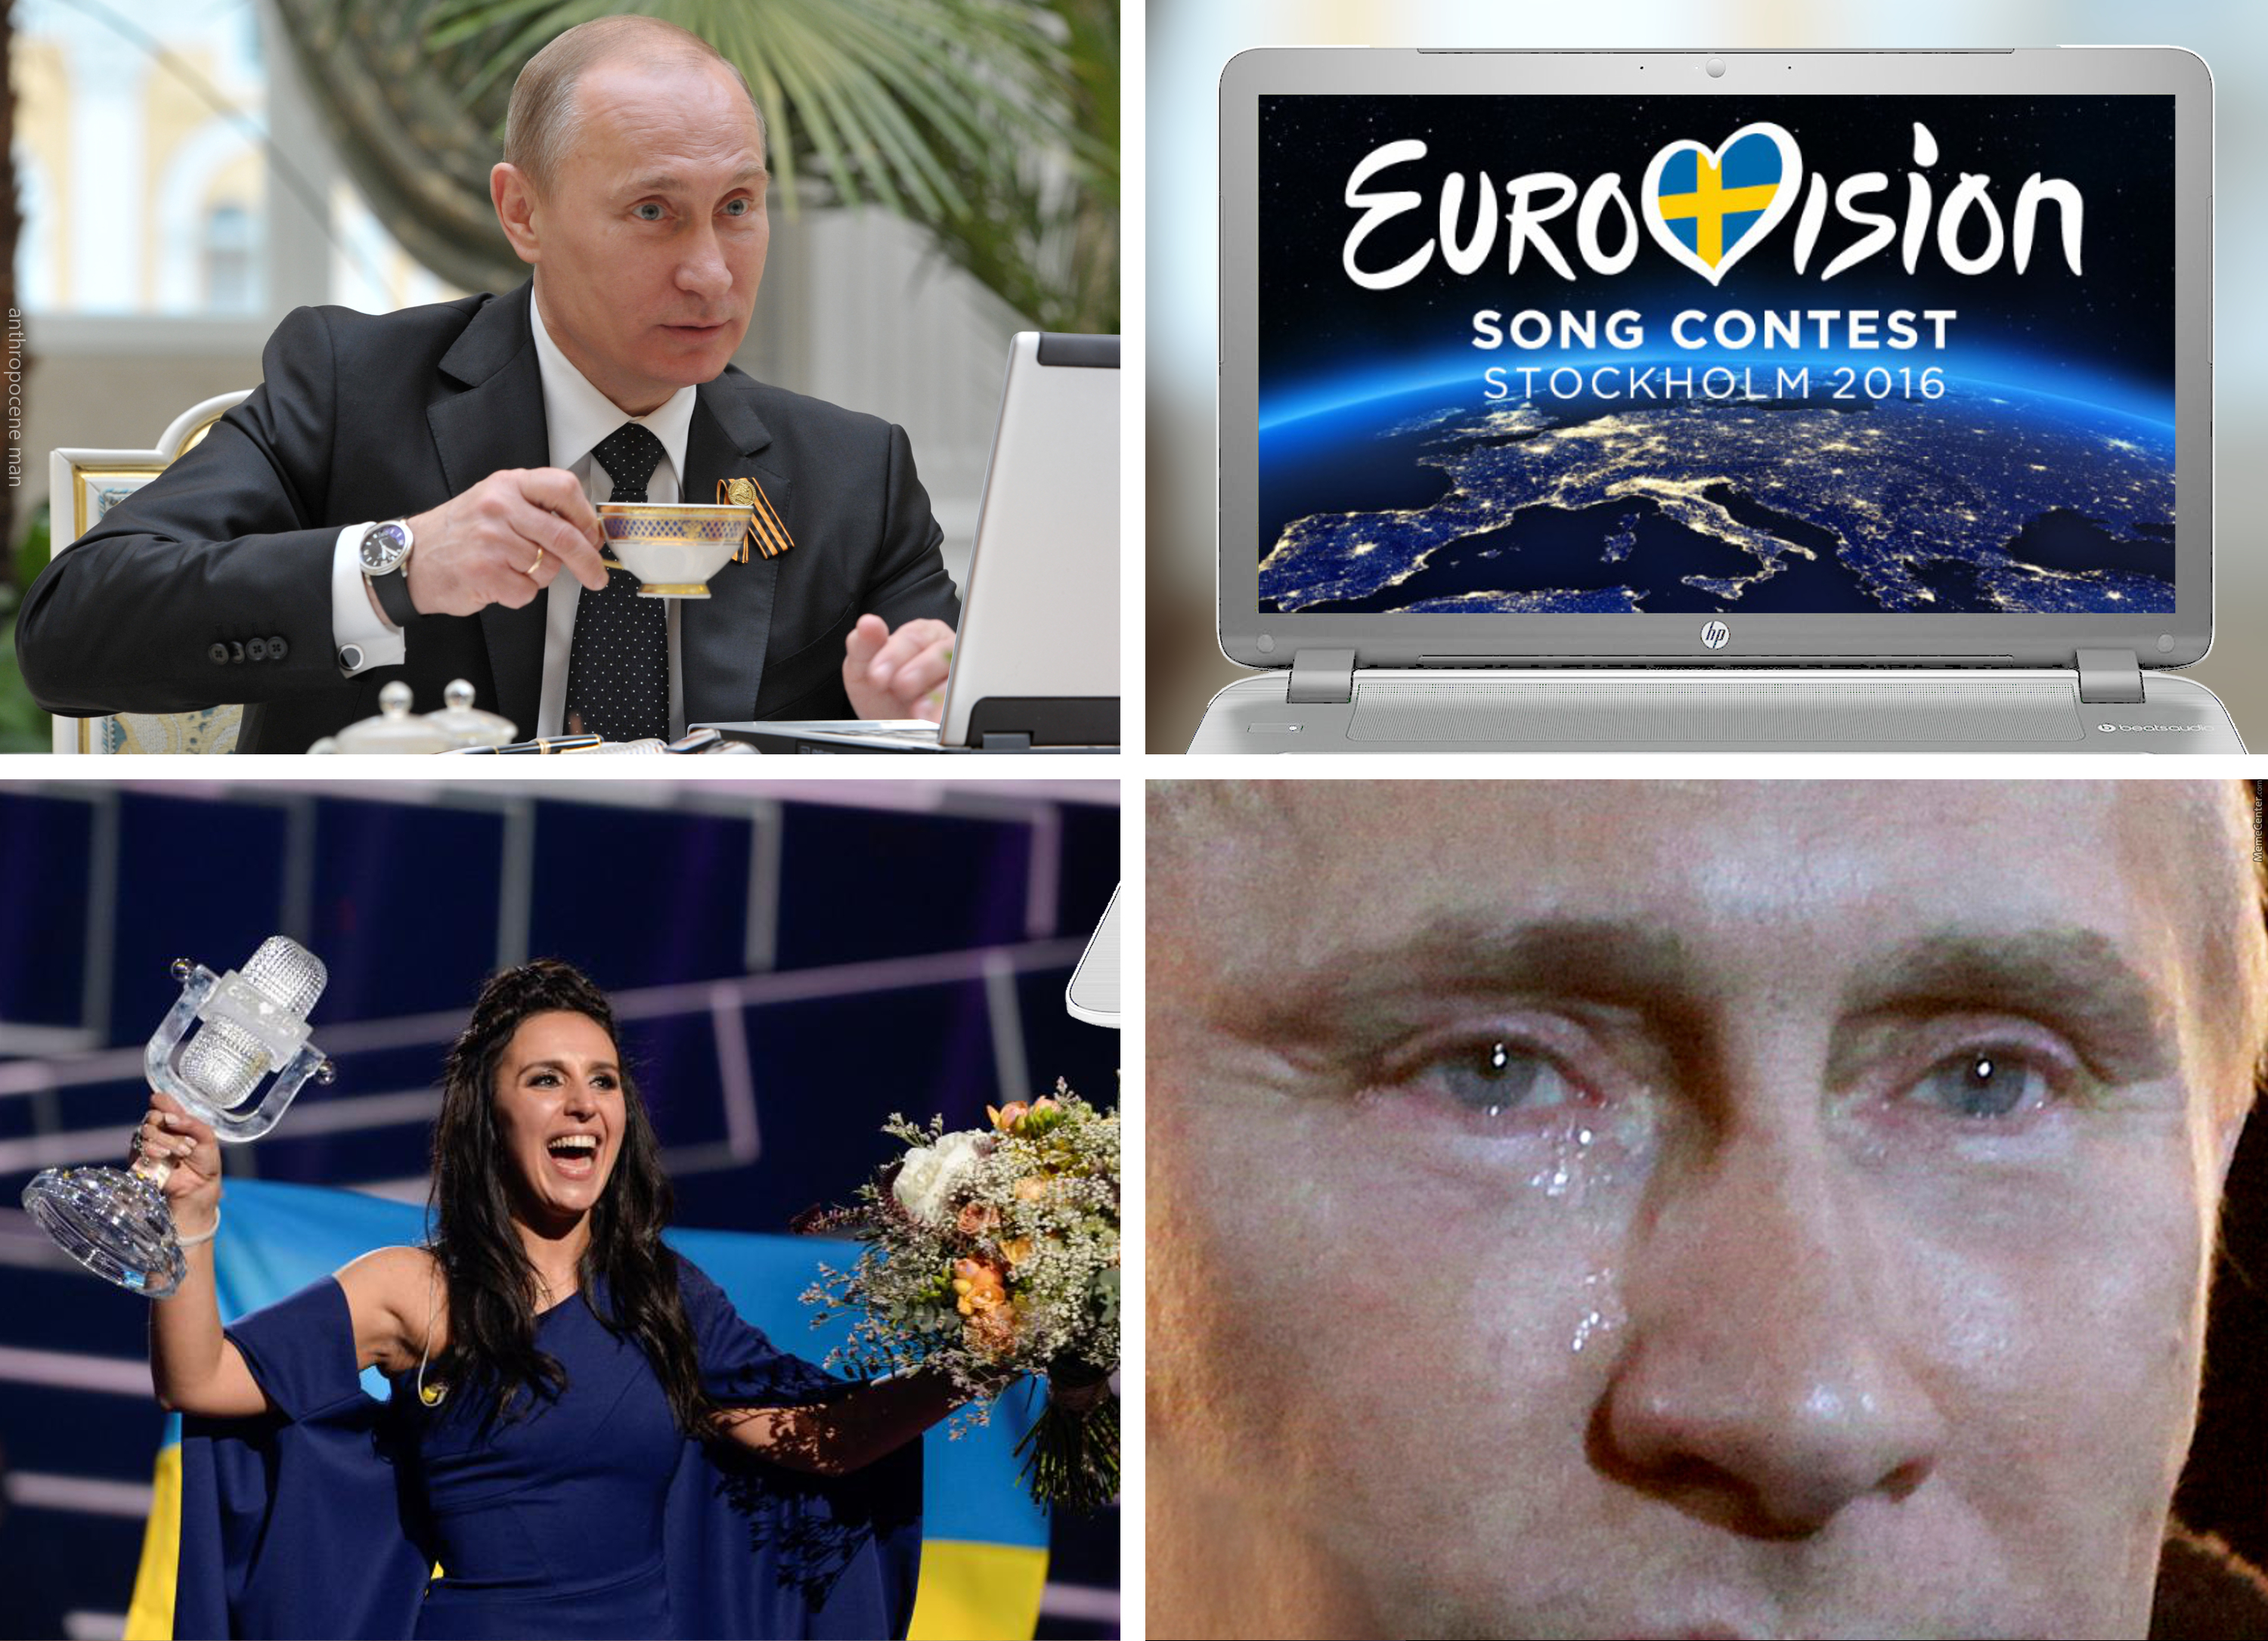 Funny Meme Song : Eurovision song contest memes. best collection of funny eurovision